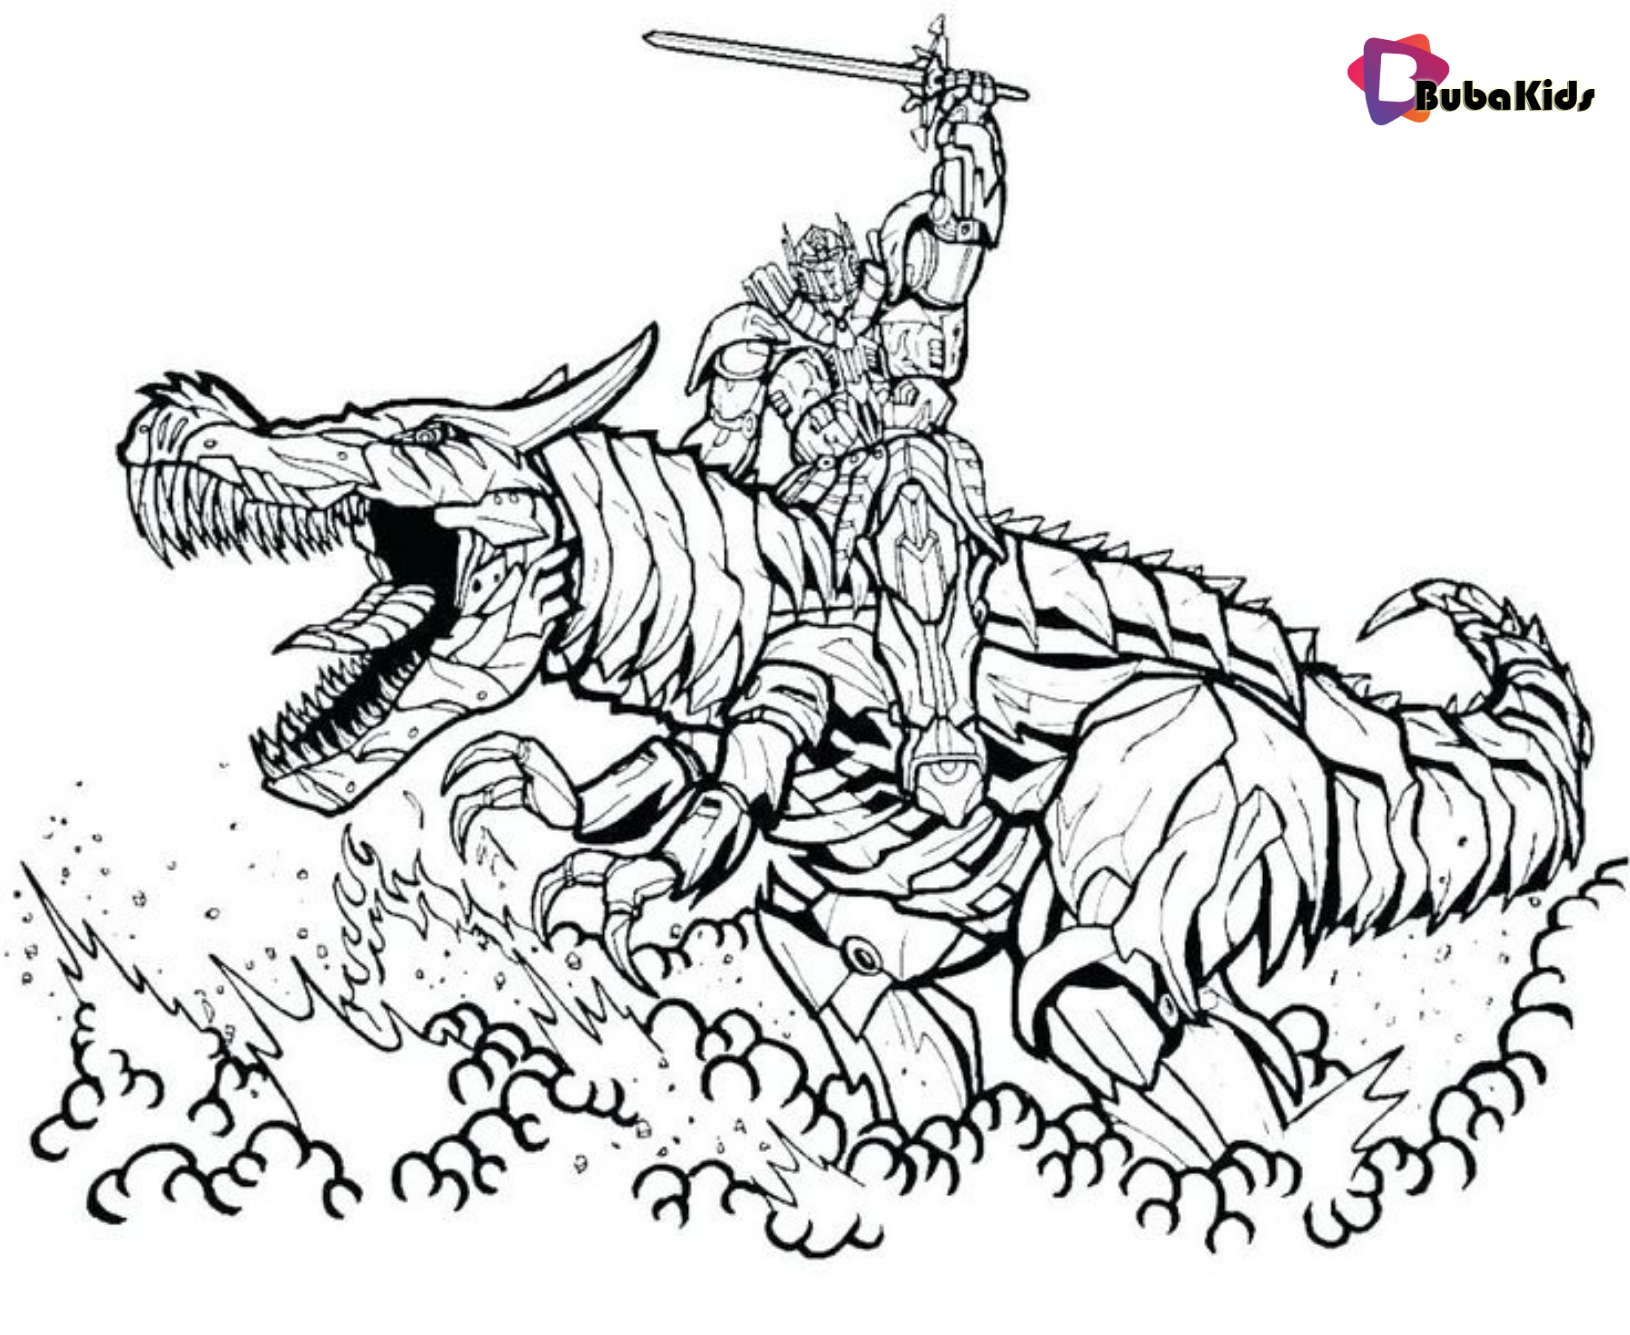 Transformers Coloring Pages Bumblebee Riding Dragon Coloring Pages Bubakids Com Bumb Transformers Coloring Pages Dinosaur Coloring Pages Dragon Coloring Page